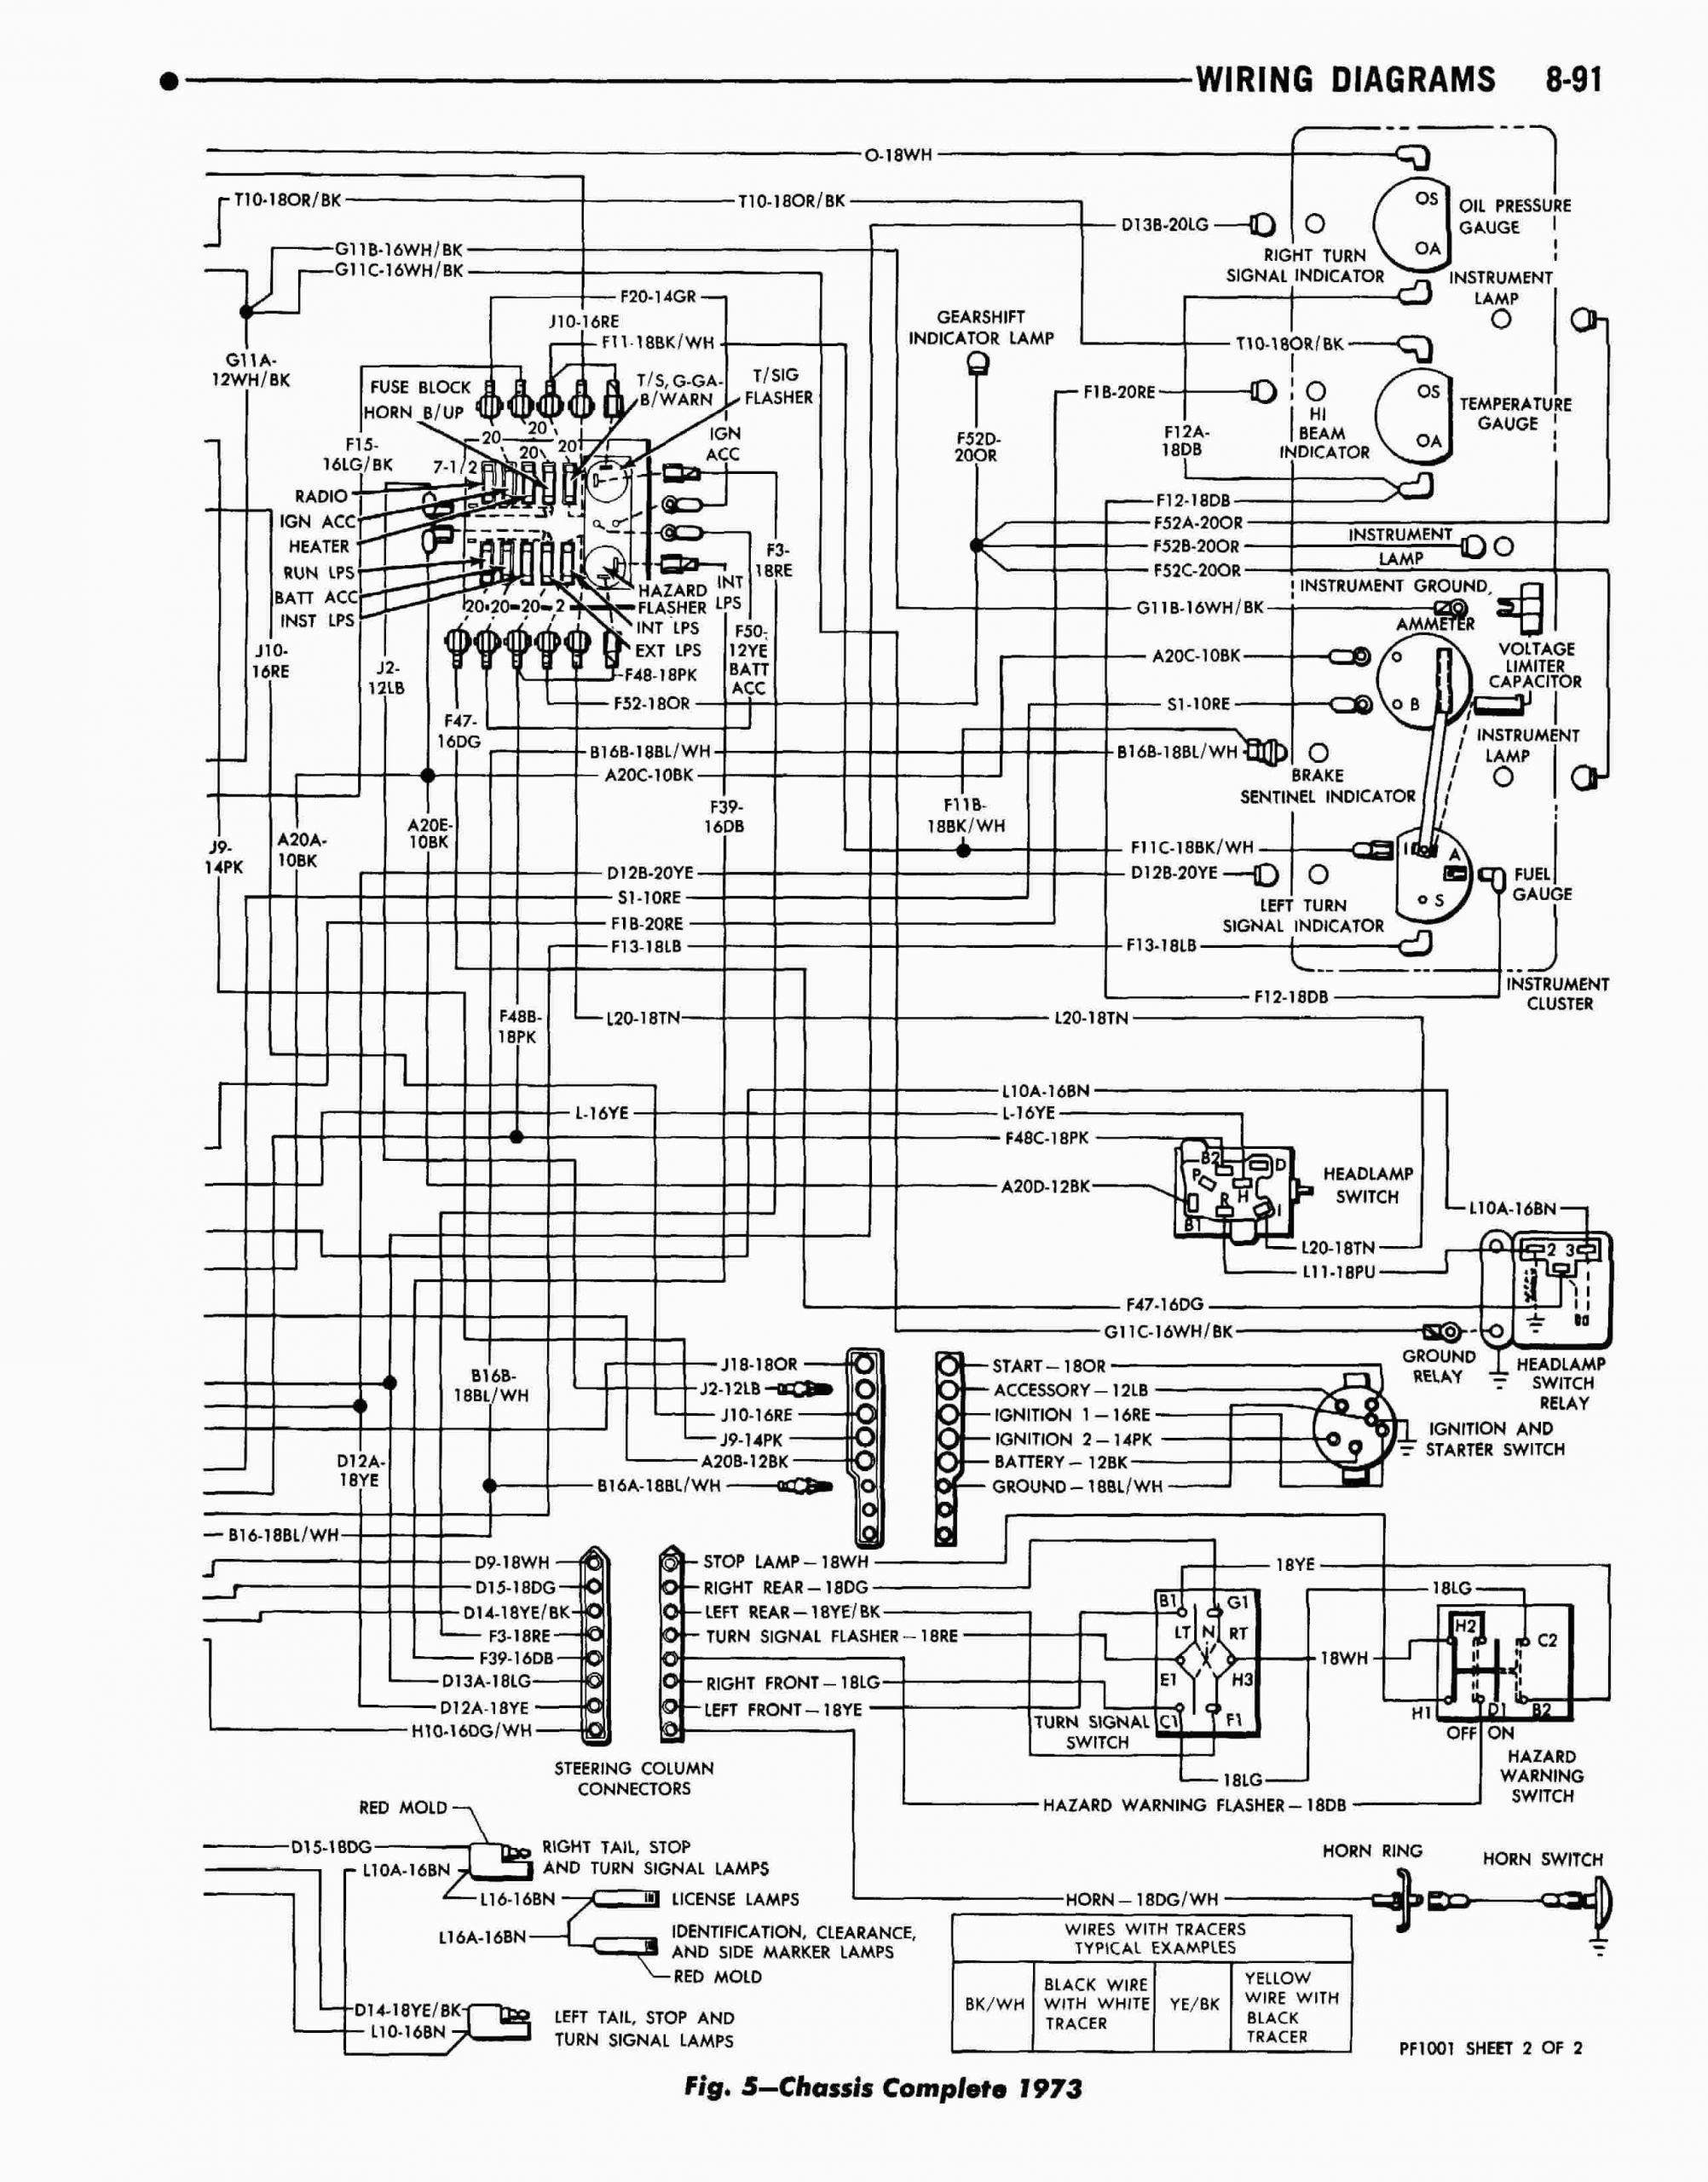 Ditch Witch 410sx Wiring Diagram Ditch Witch Parts Diagram